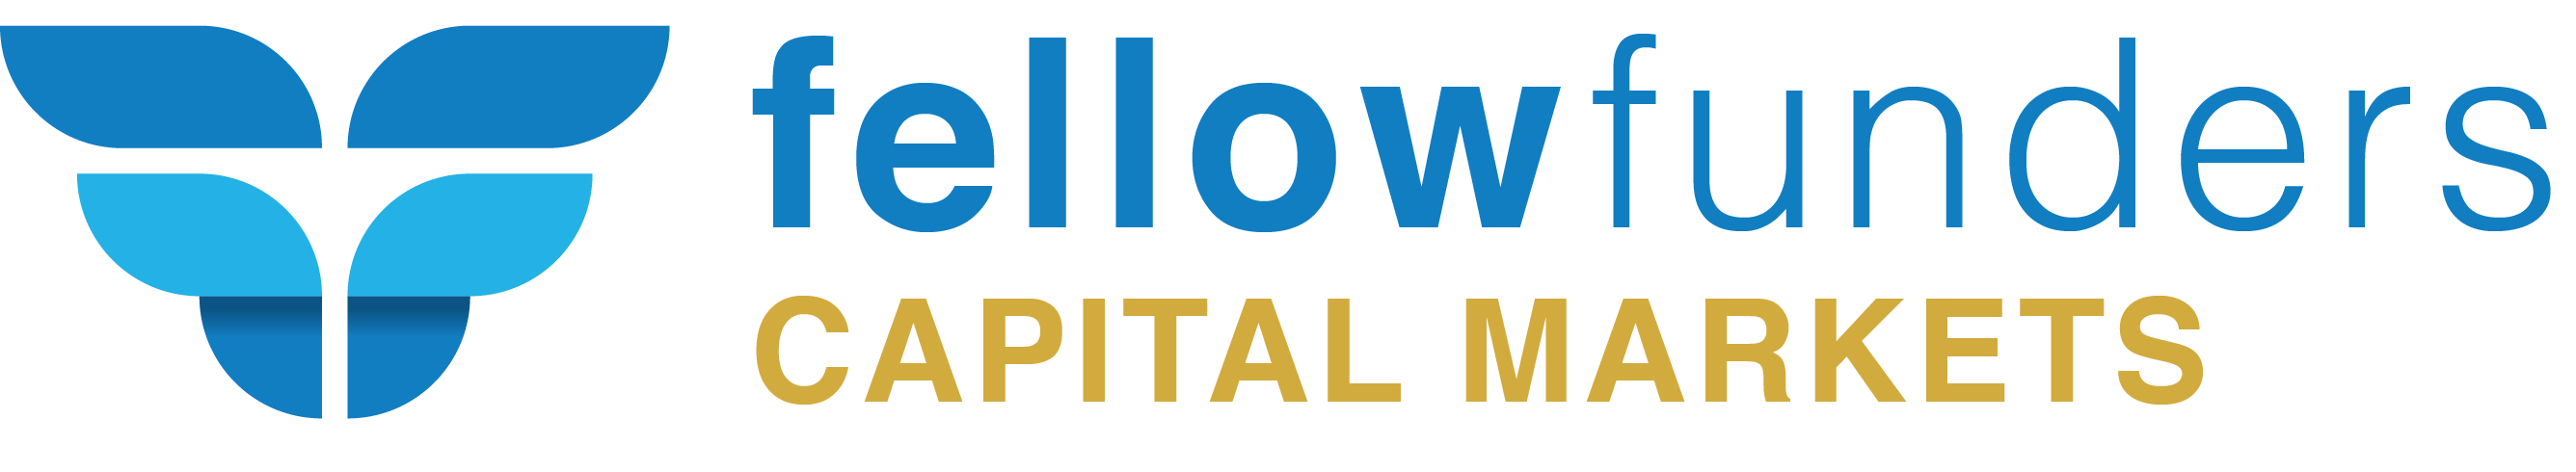 Fellow Funders Capital Markets